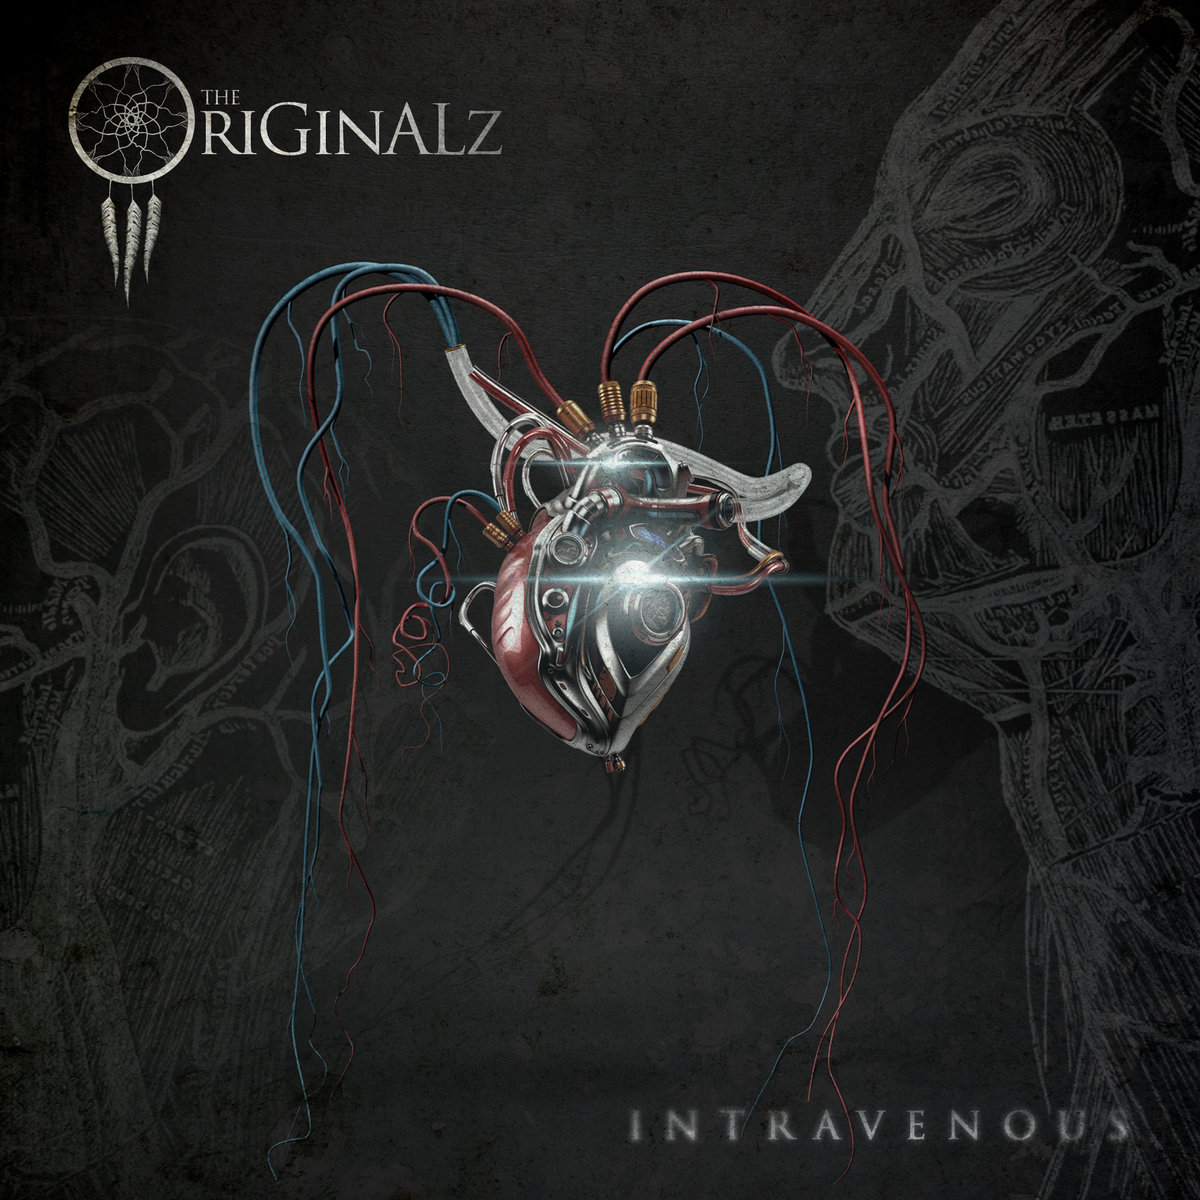 The OriGinALz - Star Seed @ 'Intravenous' album (Austin)